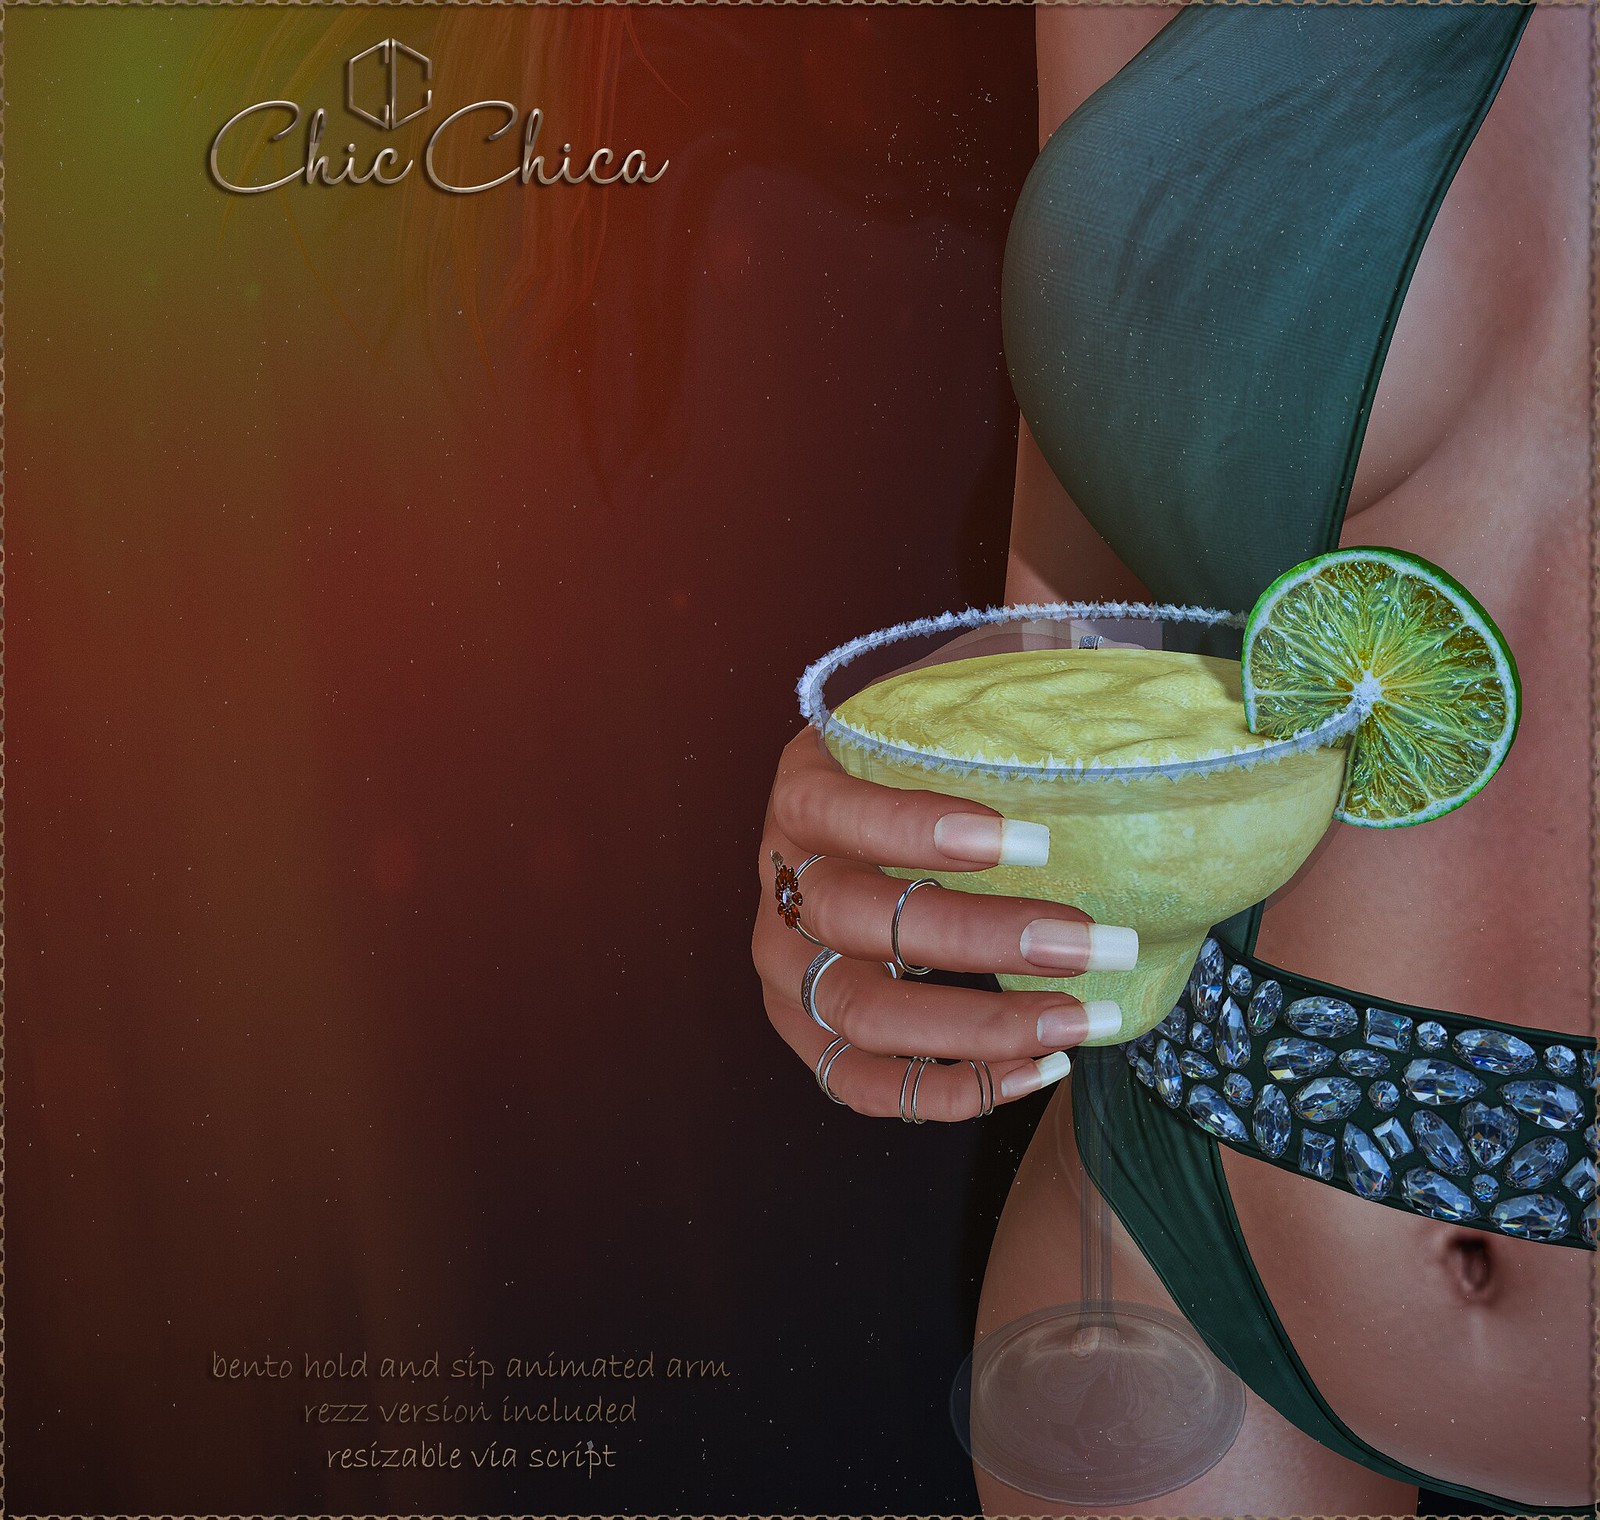 Margarita by ChicChica OUT @ Equal10